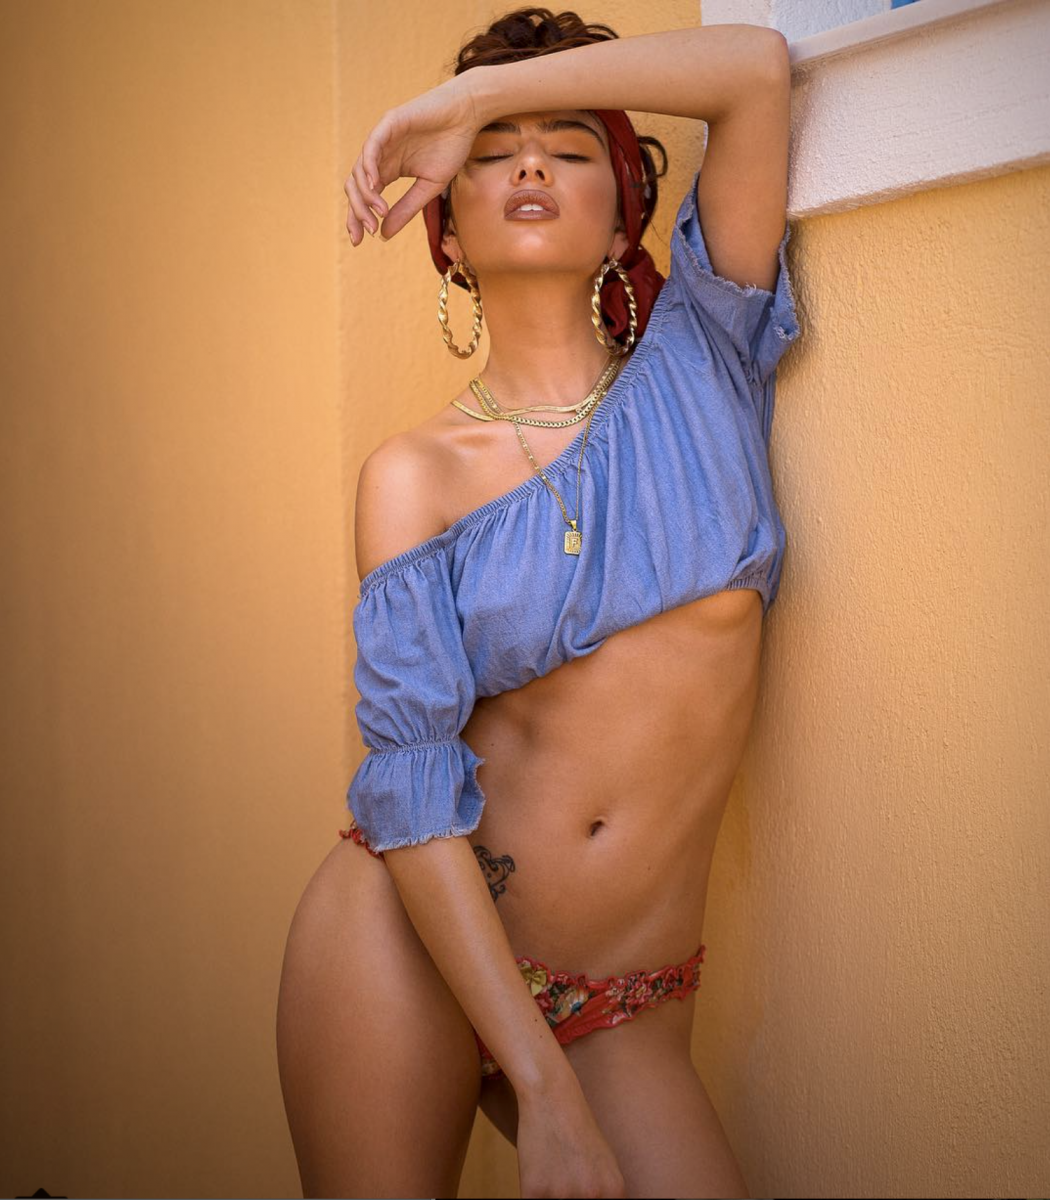 Balistarz-model-Fifi-Anicah-portrait-shoot-in-blue-top-with-a-red-bandana-and-gold-accessories